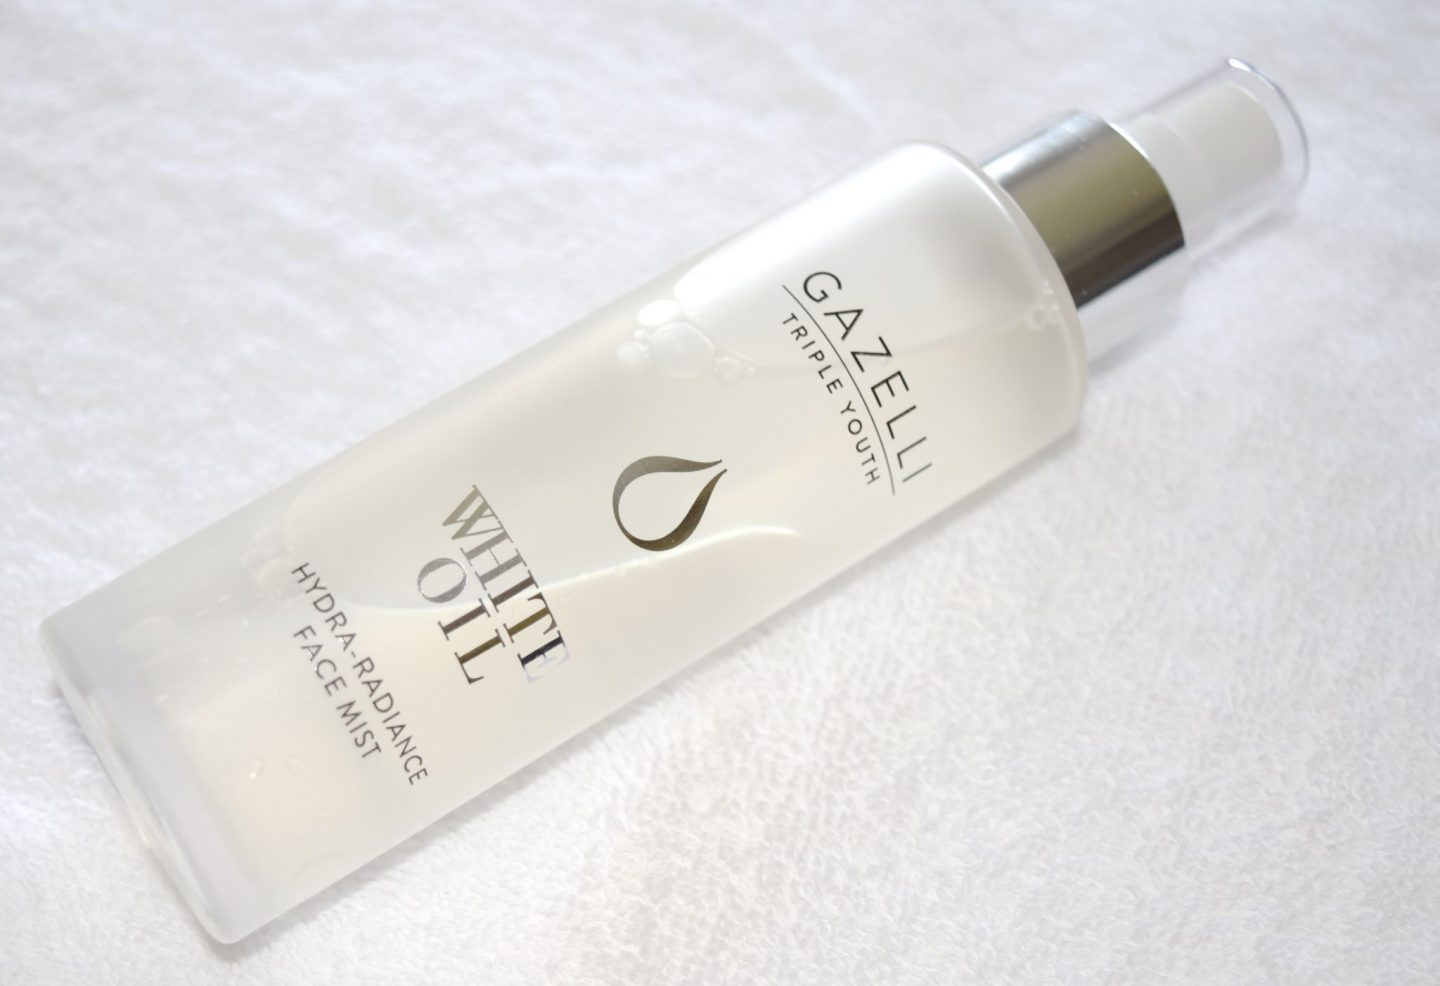 Gazelli White Flower Hydra-Radiance Face Mist 1